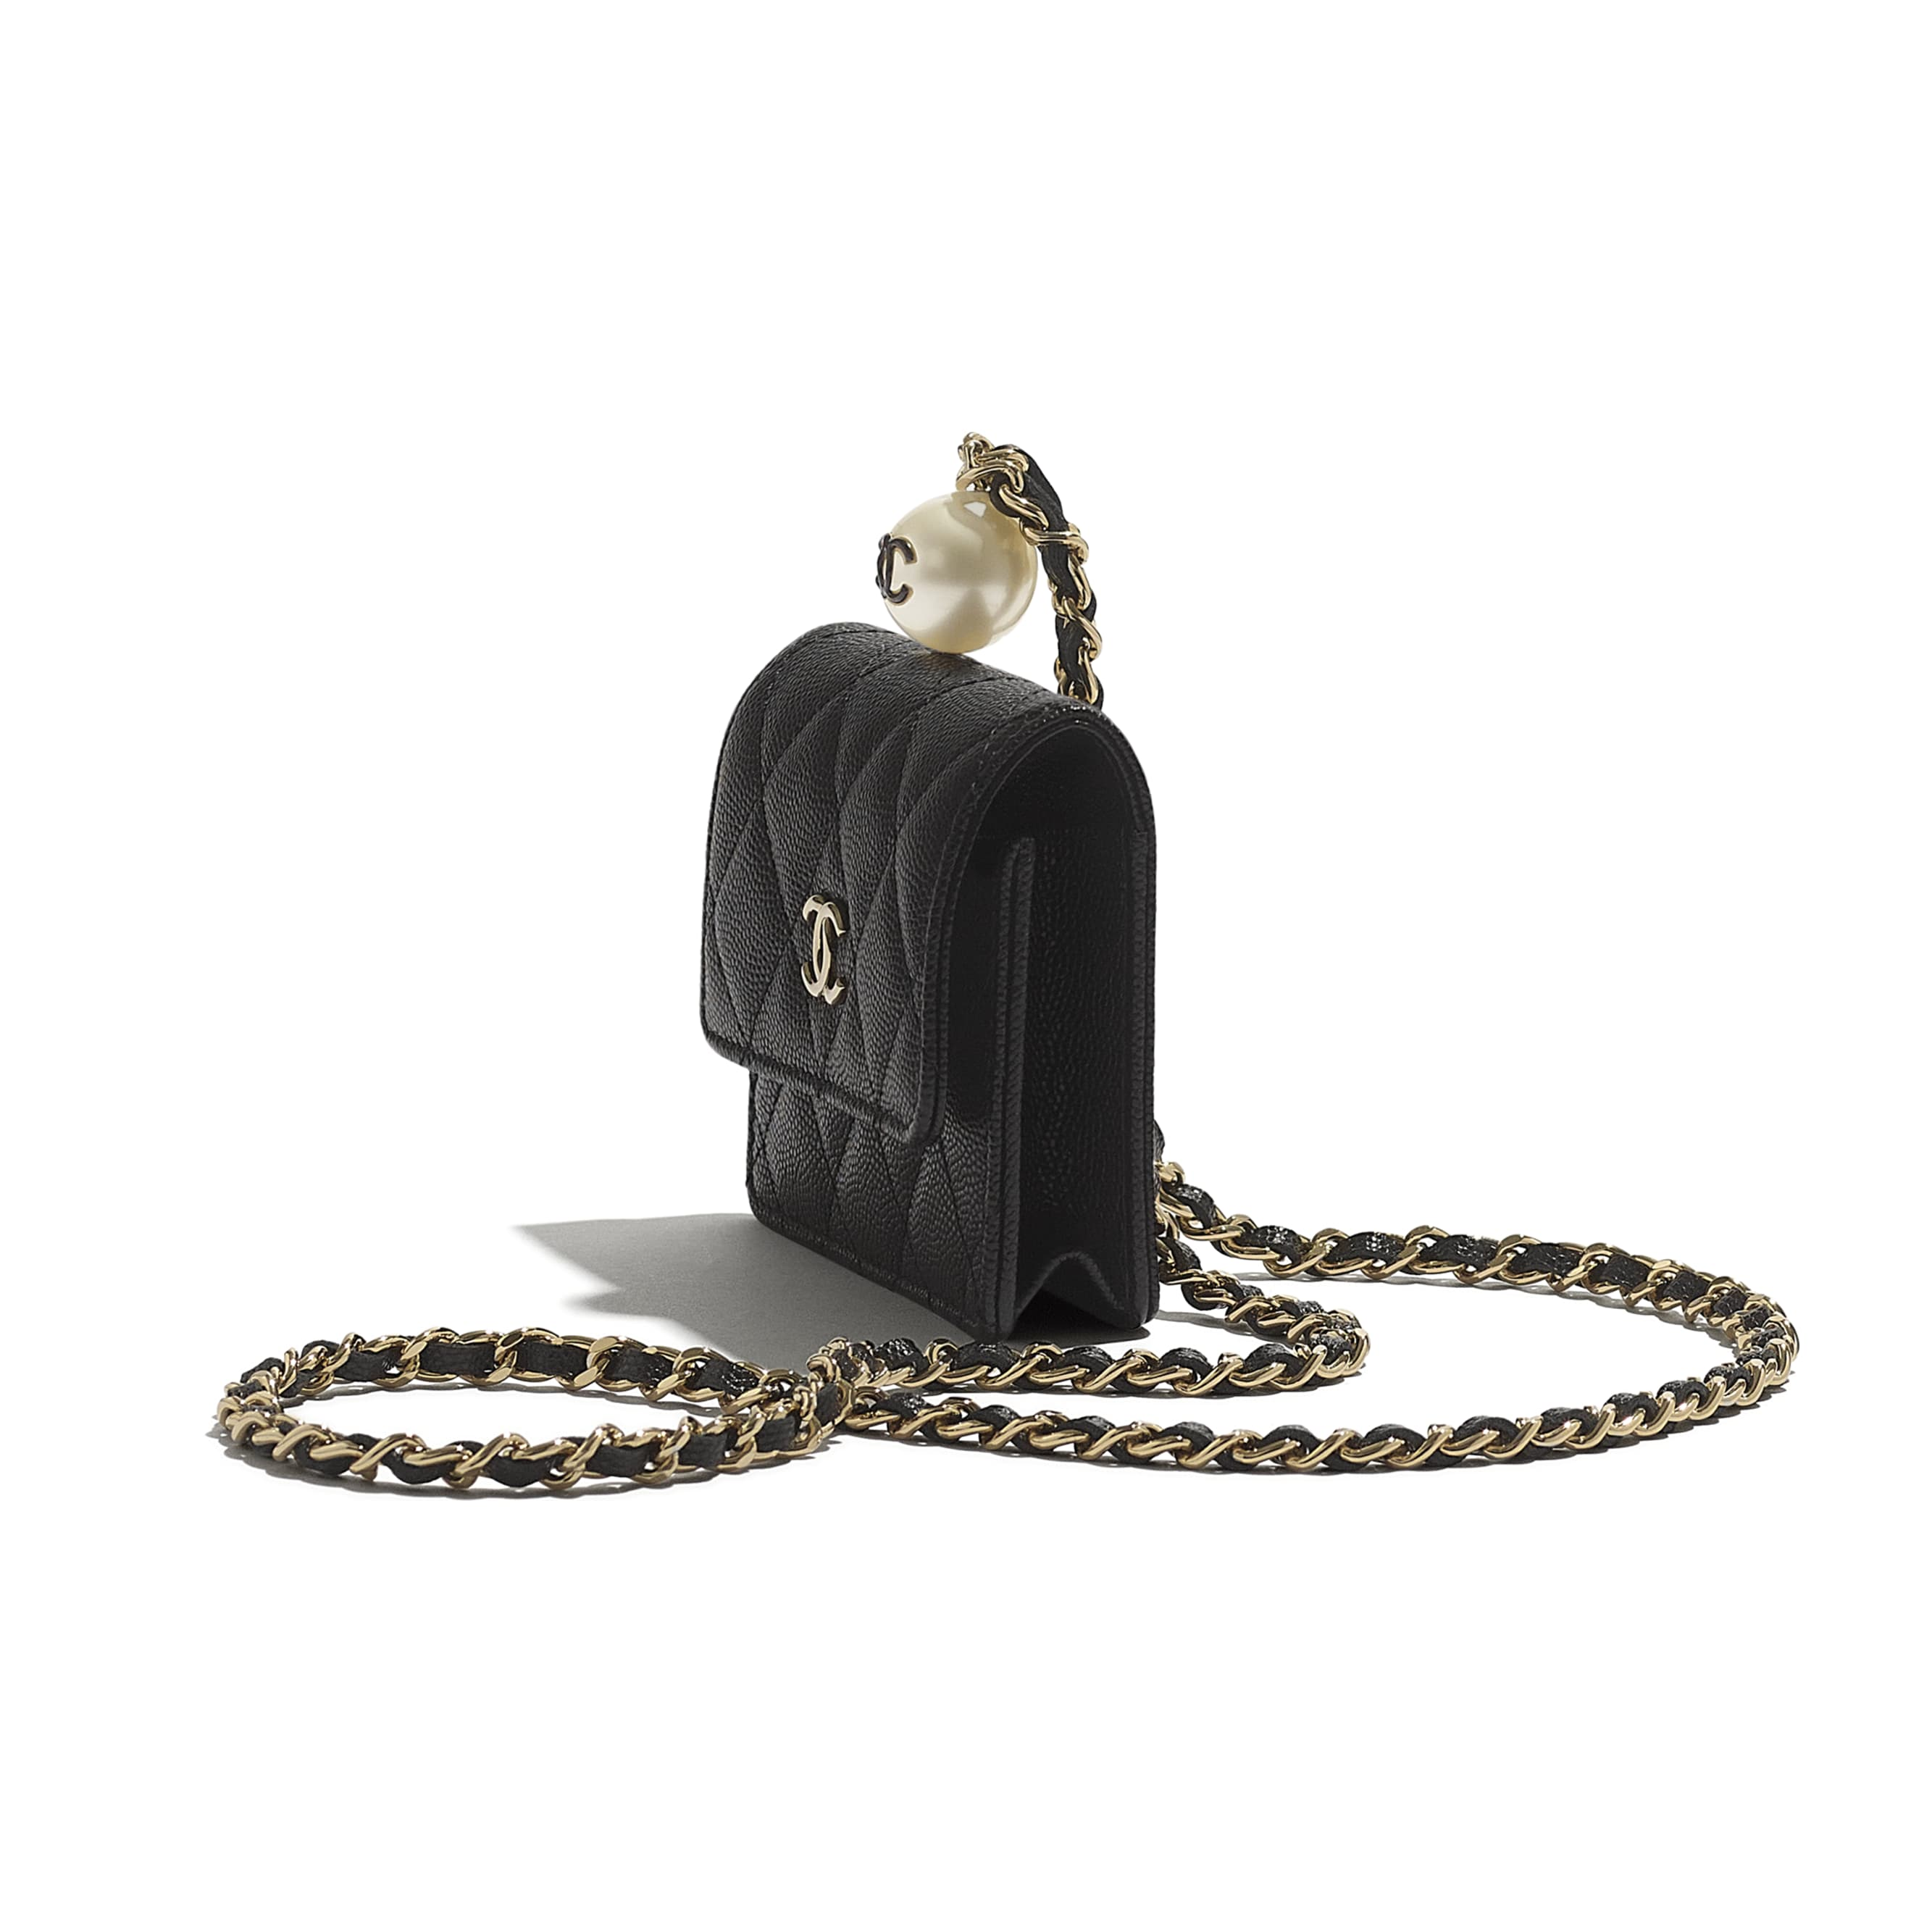 Flap Coin Purse with Chain - Black - Grained Calfskin, Imitation Pearl & Gold-Tone Metal - CHANEL - Other view - see standard sized version